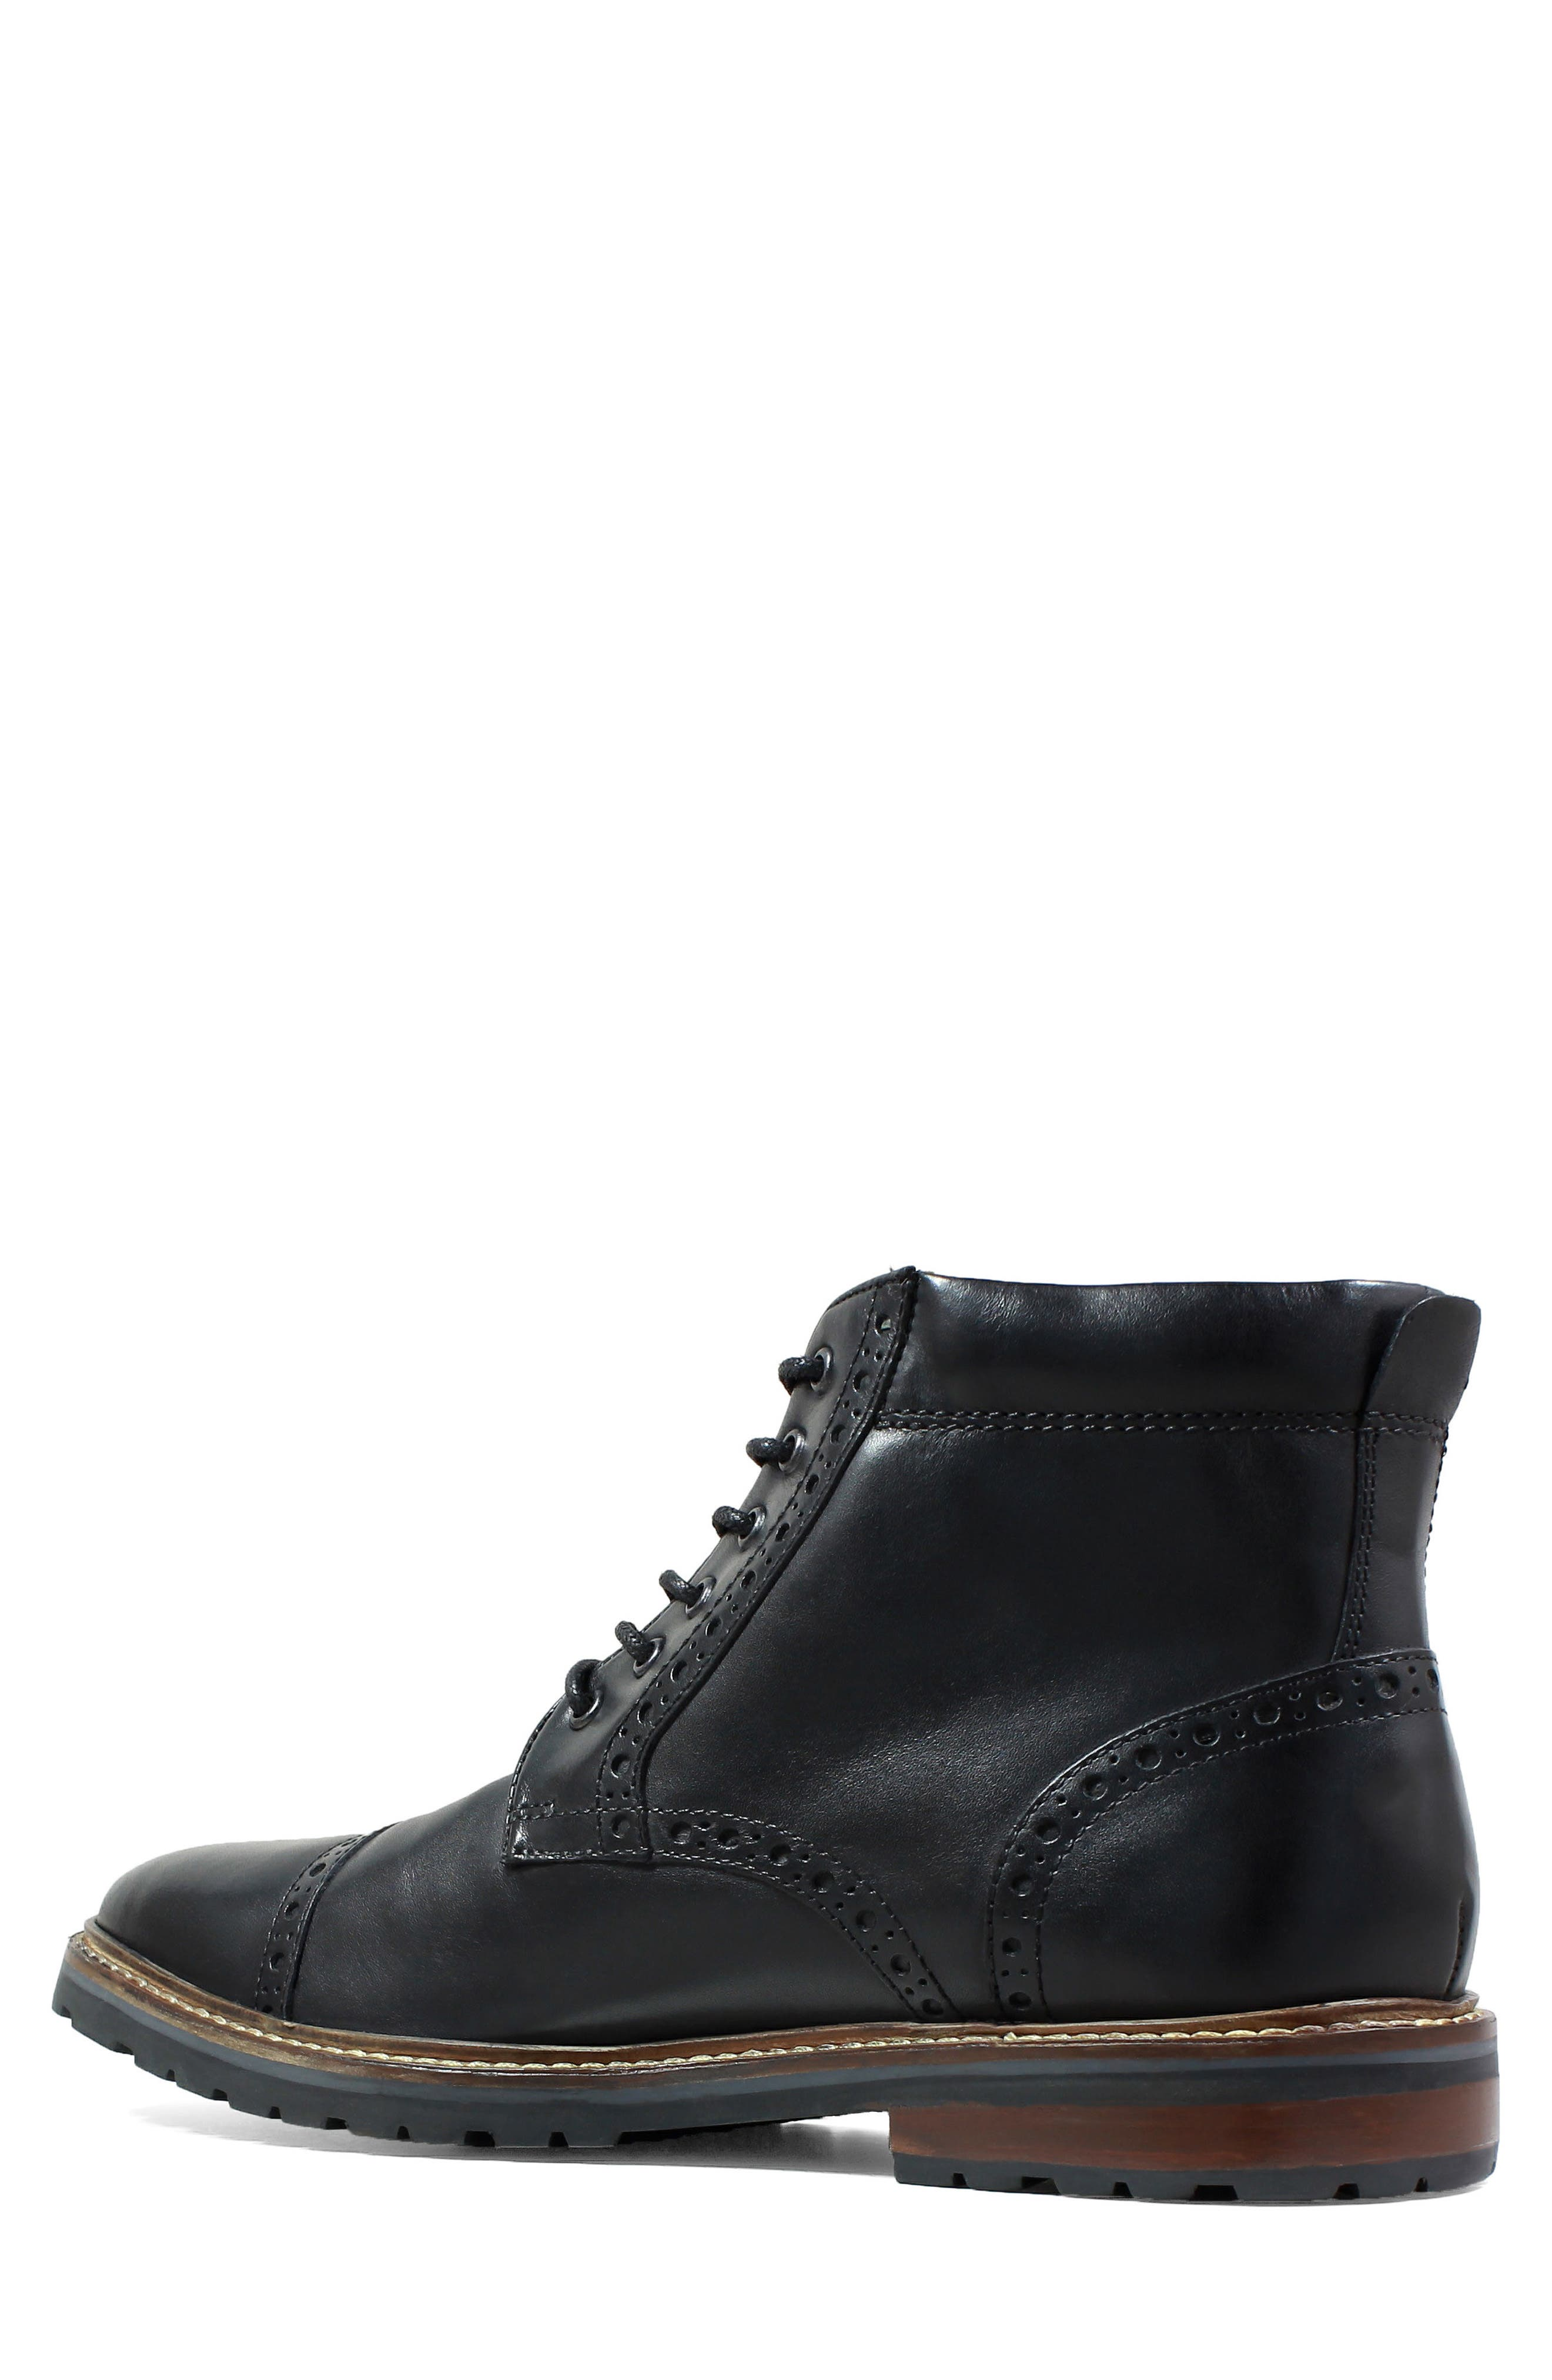 Alternate Image 2  - Florsheim Estabrook Cap Toe Boot (Men)